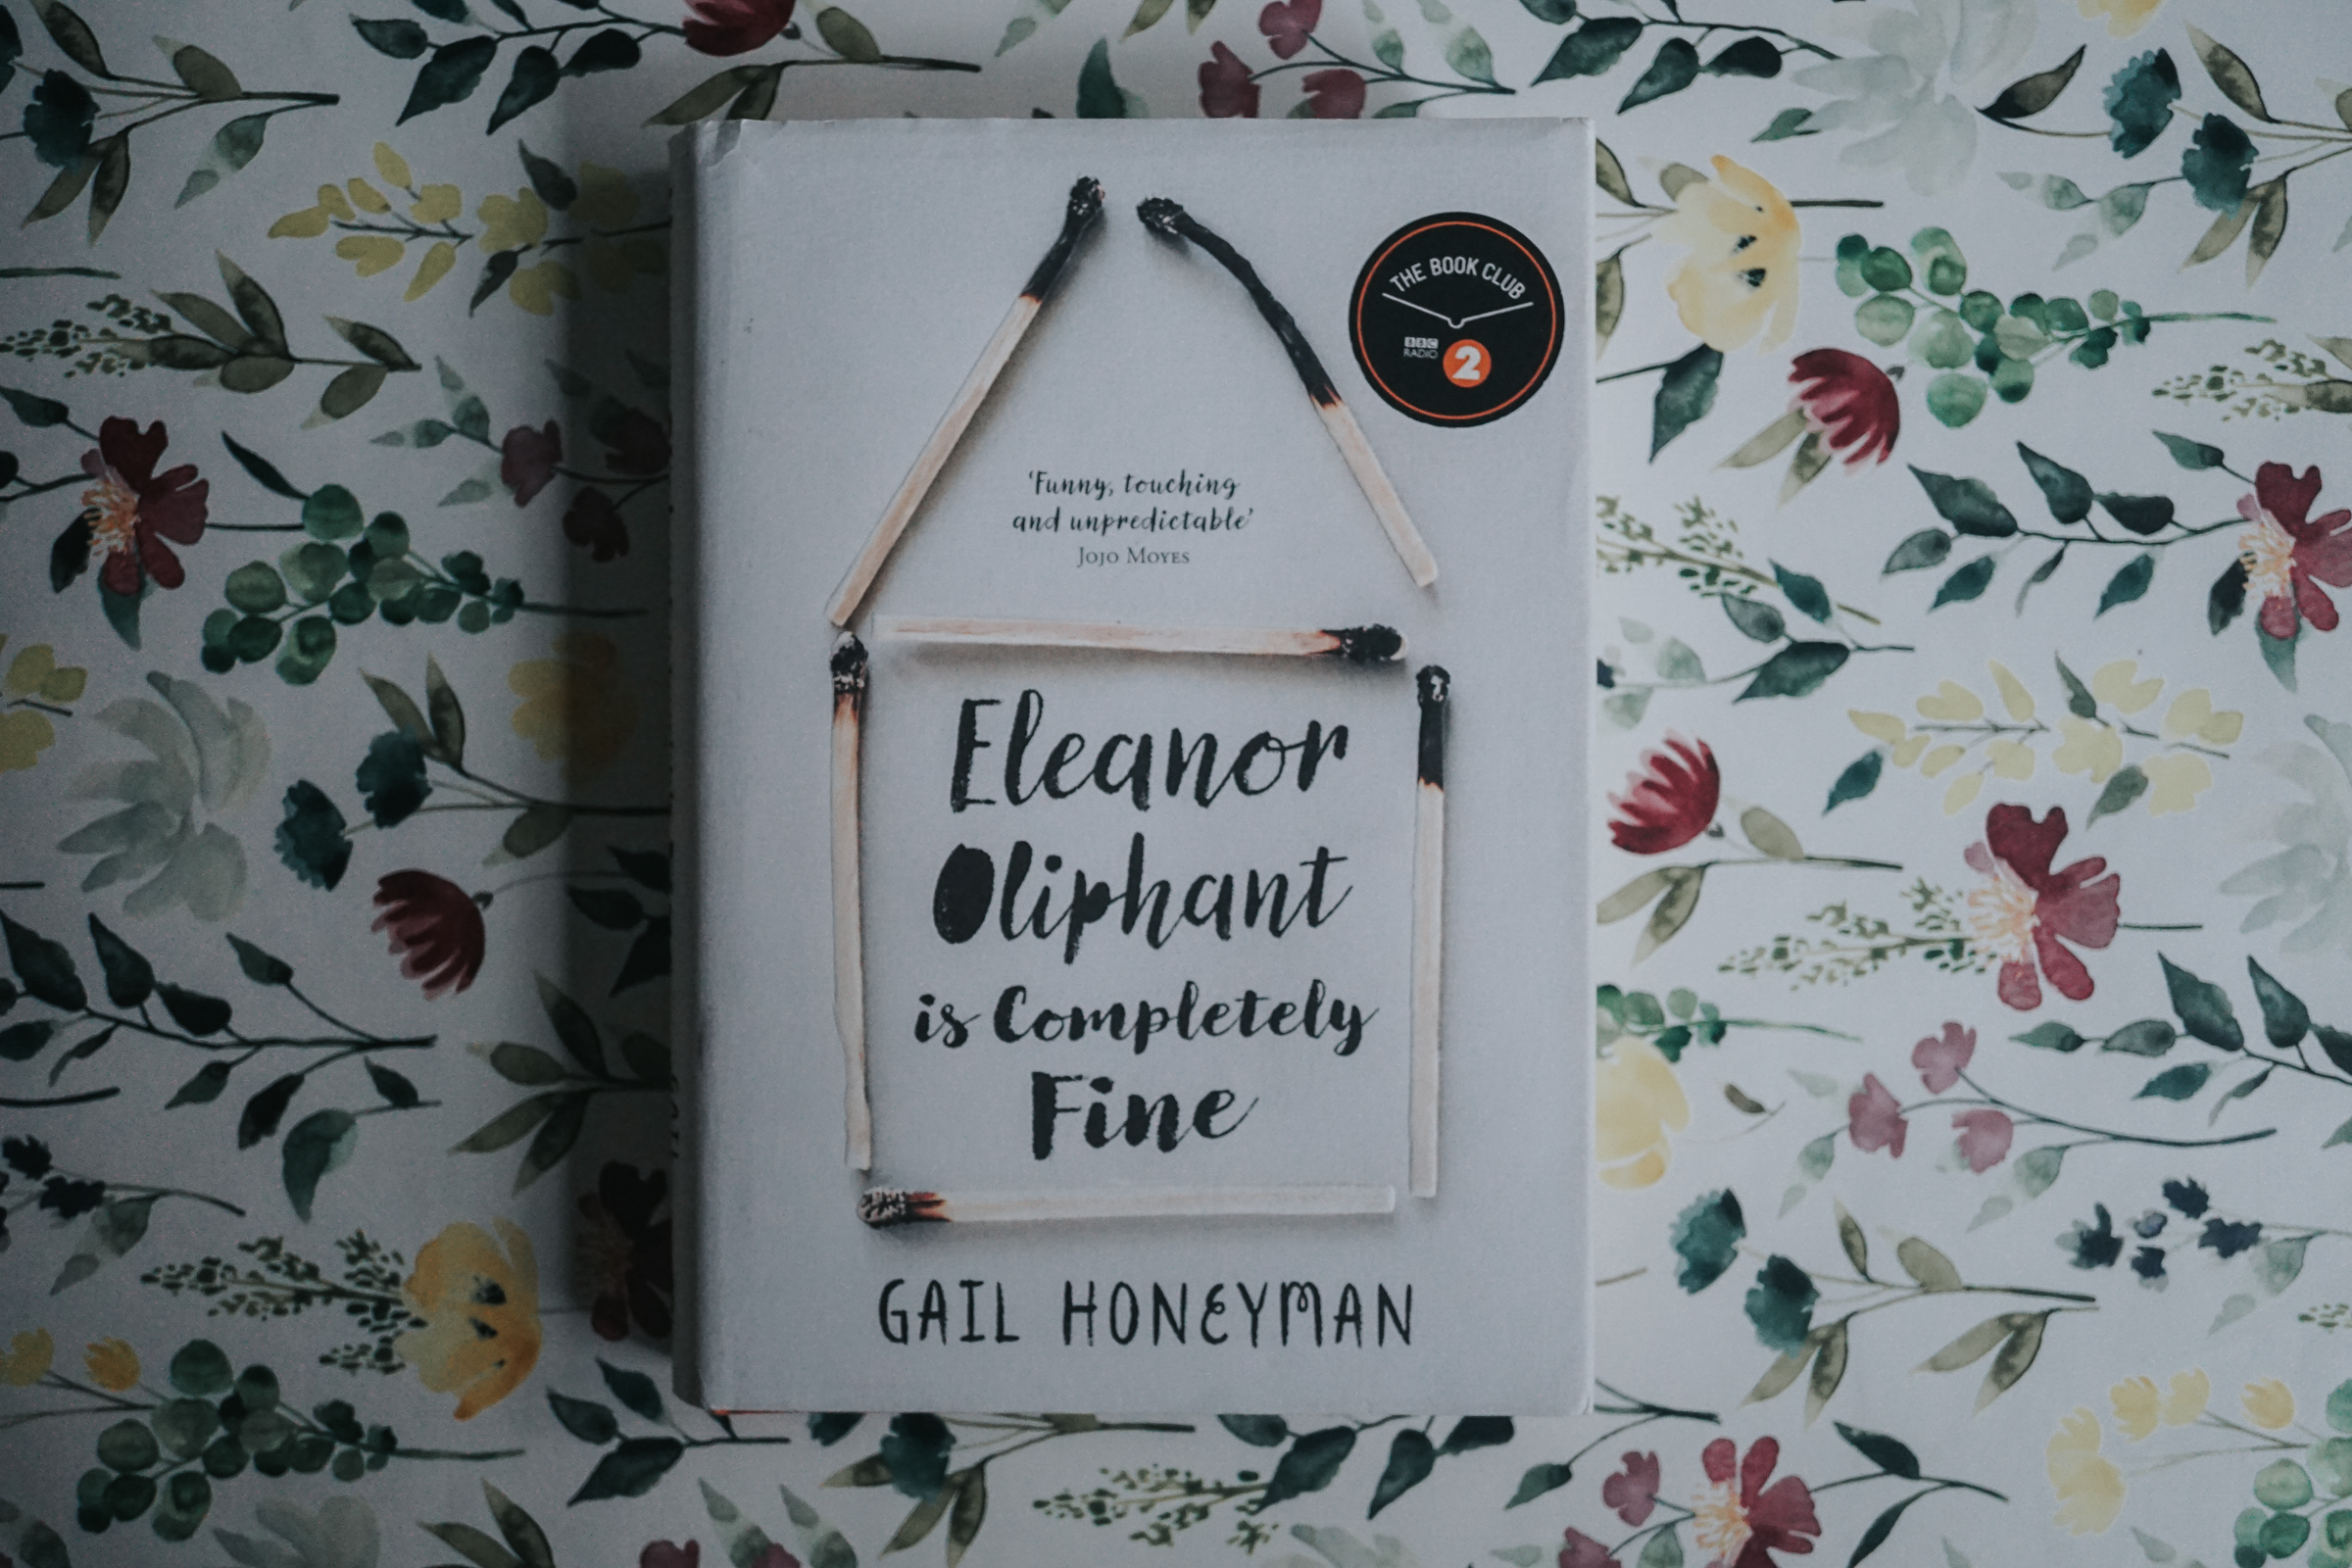 eleanor-oliphant-is-completly-fine-minas-planet-jasmina-haskovic-new-book-to-read-find-a-book-to-read-gail-honeyman3.jpg